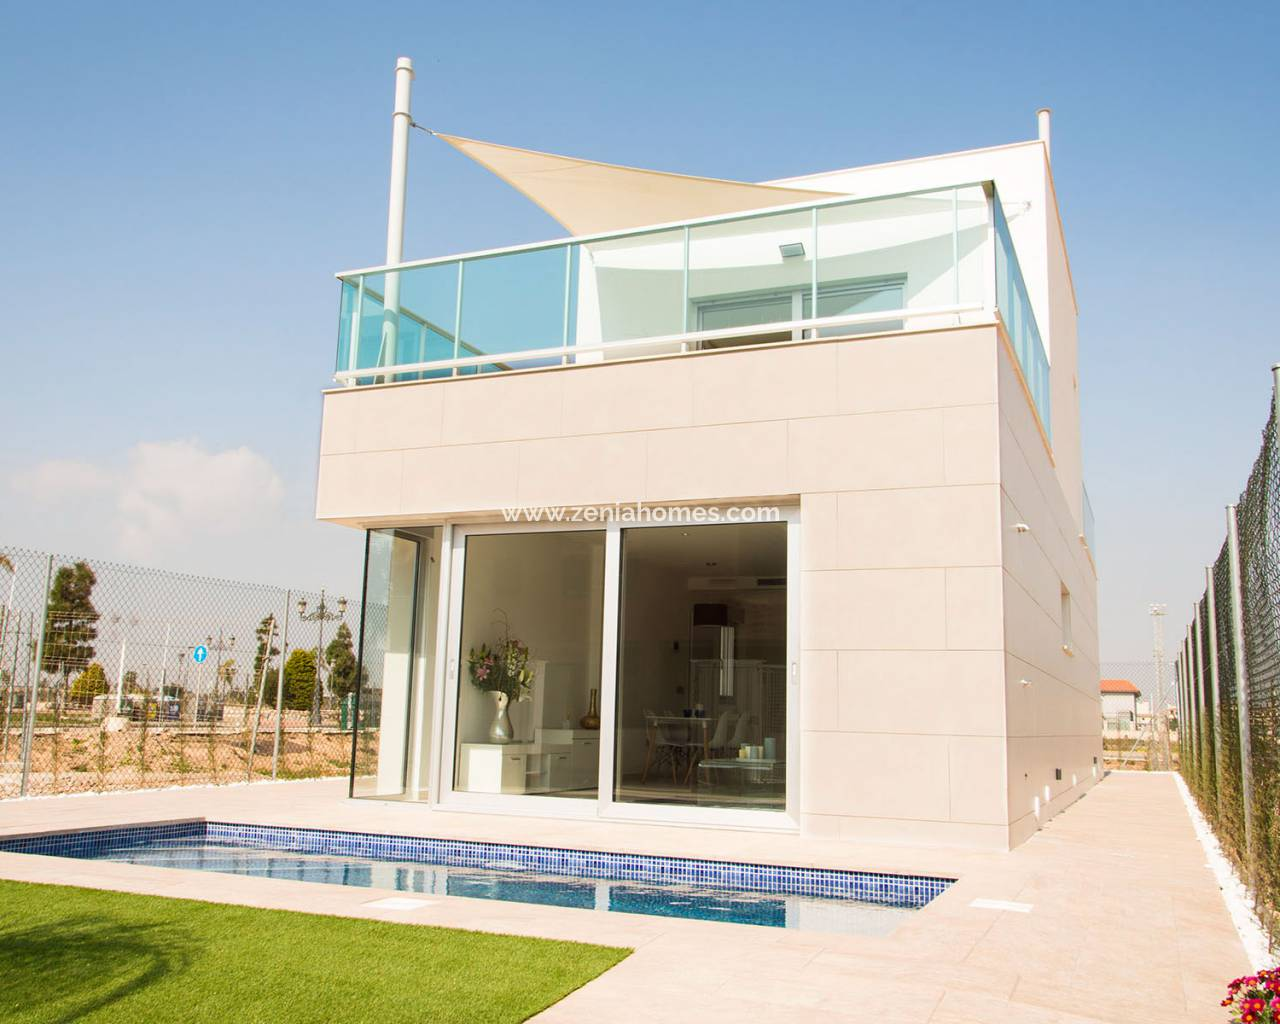 Detached Villa - Nouvelle construction - Los Alcazares - Los Alcazares